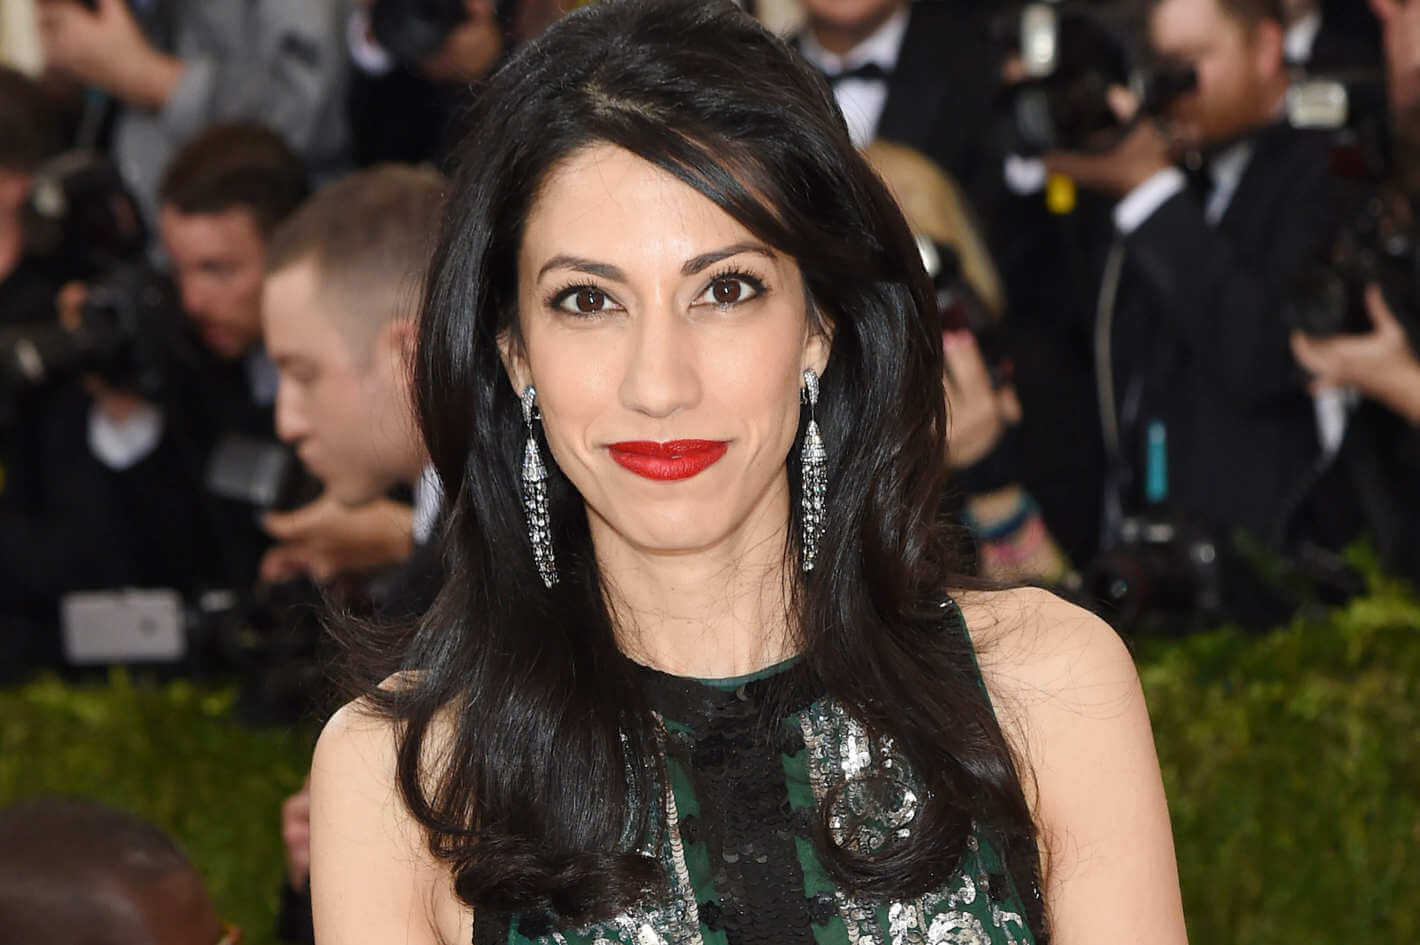 Where is Huma Abedin